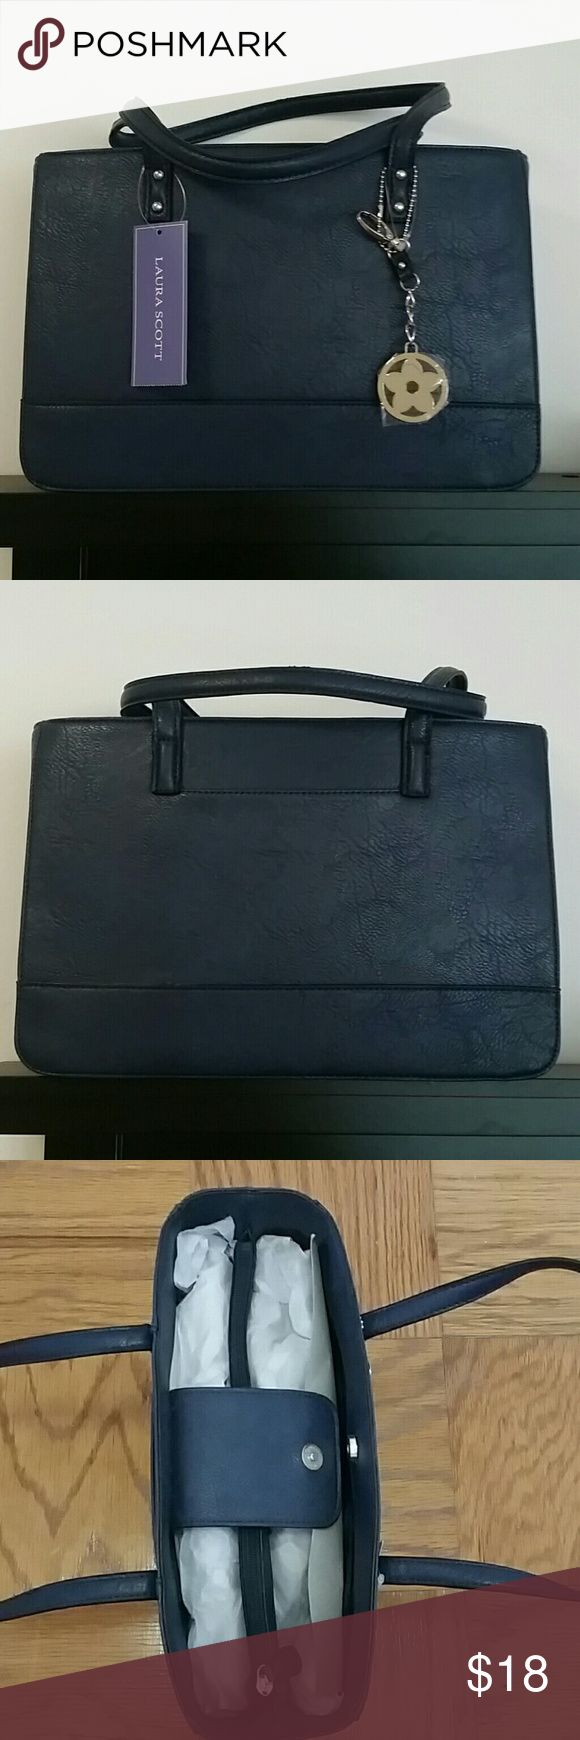 "Laura Scott Medium Tote Never been used with tags on. Navy blue handbag perfect for carrying a tablet, small laptop and more. Approx. 13.5"" long, 9"" deep, 5"" wide. Laura Scott Bags"